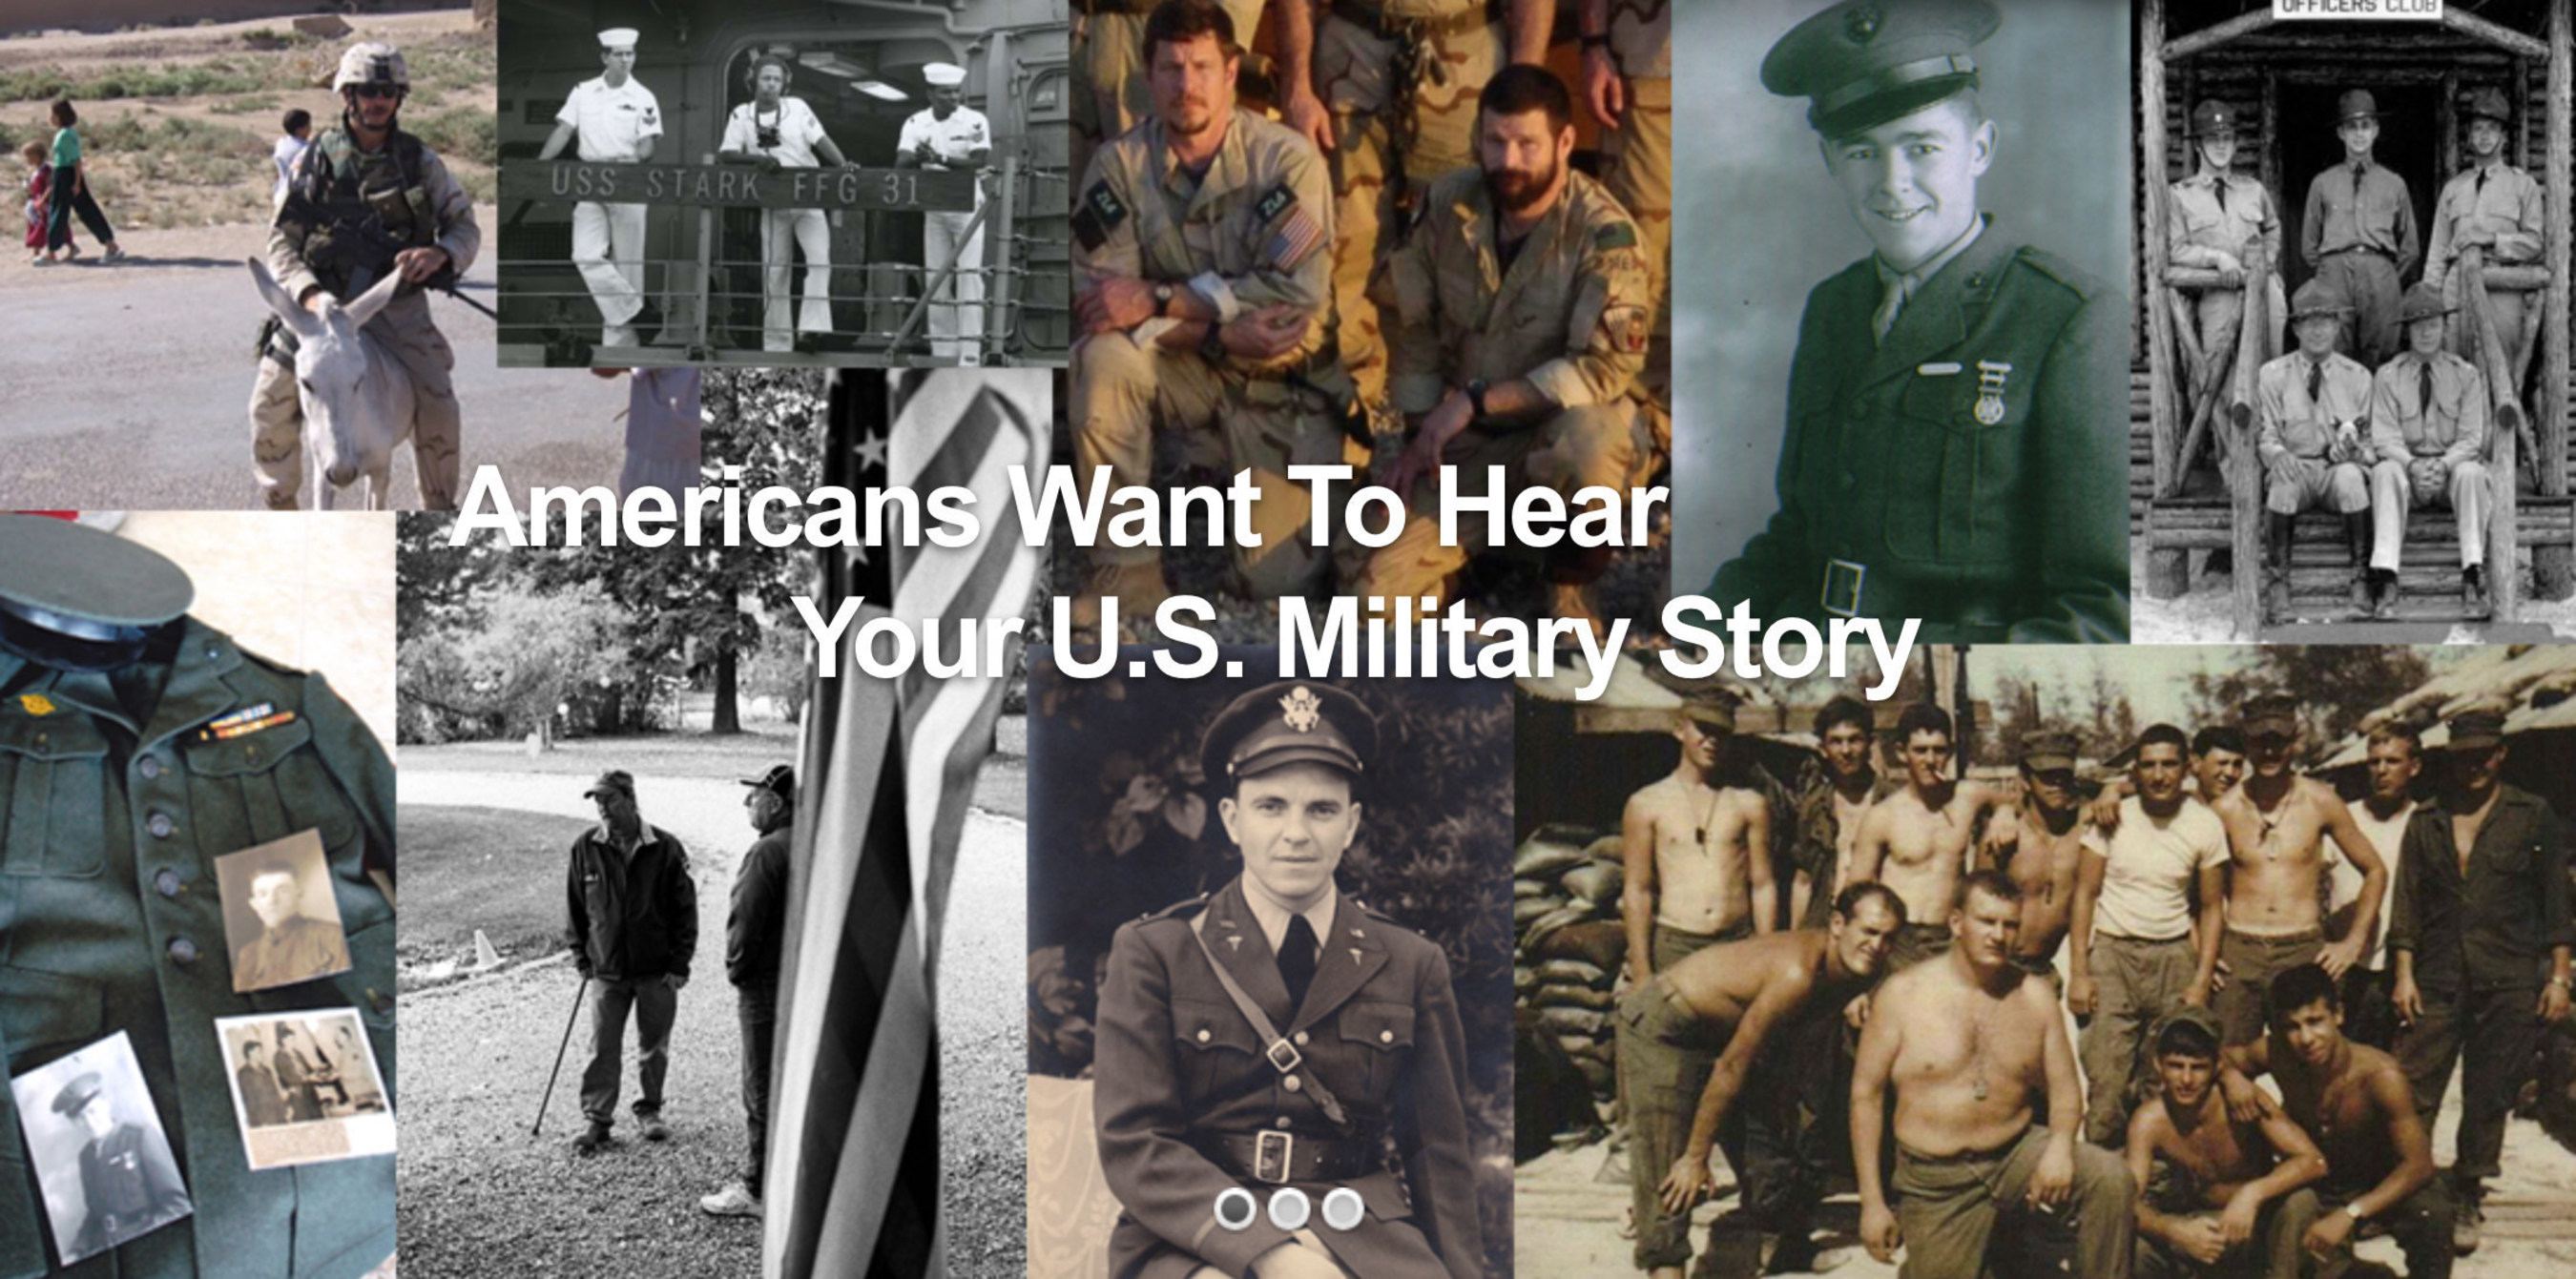 The R4 Alliance Patriots' Parade Initiative Provides Complimentary Website Tributes In Support Of Military Families